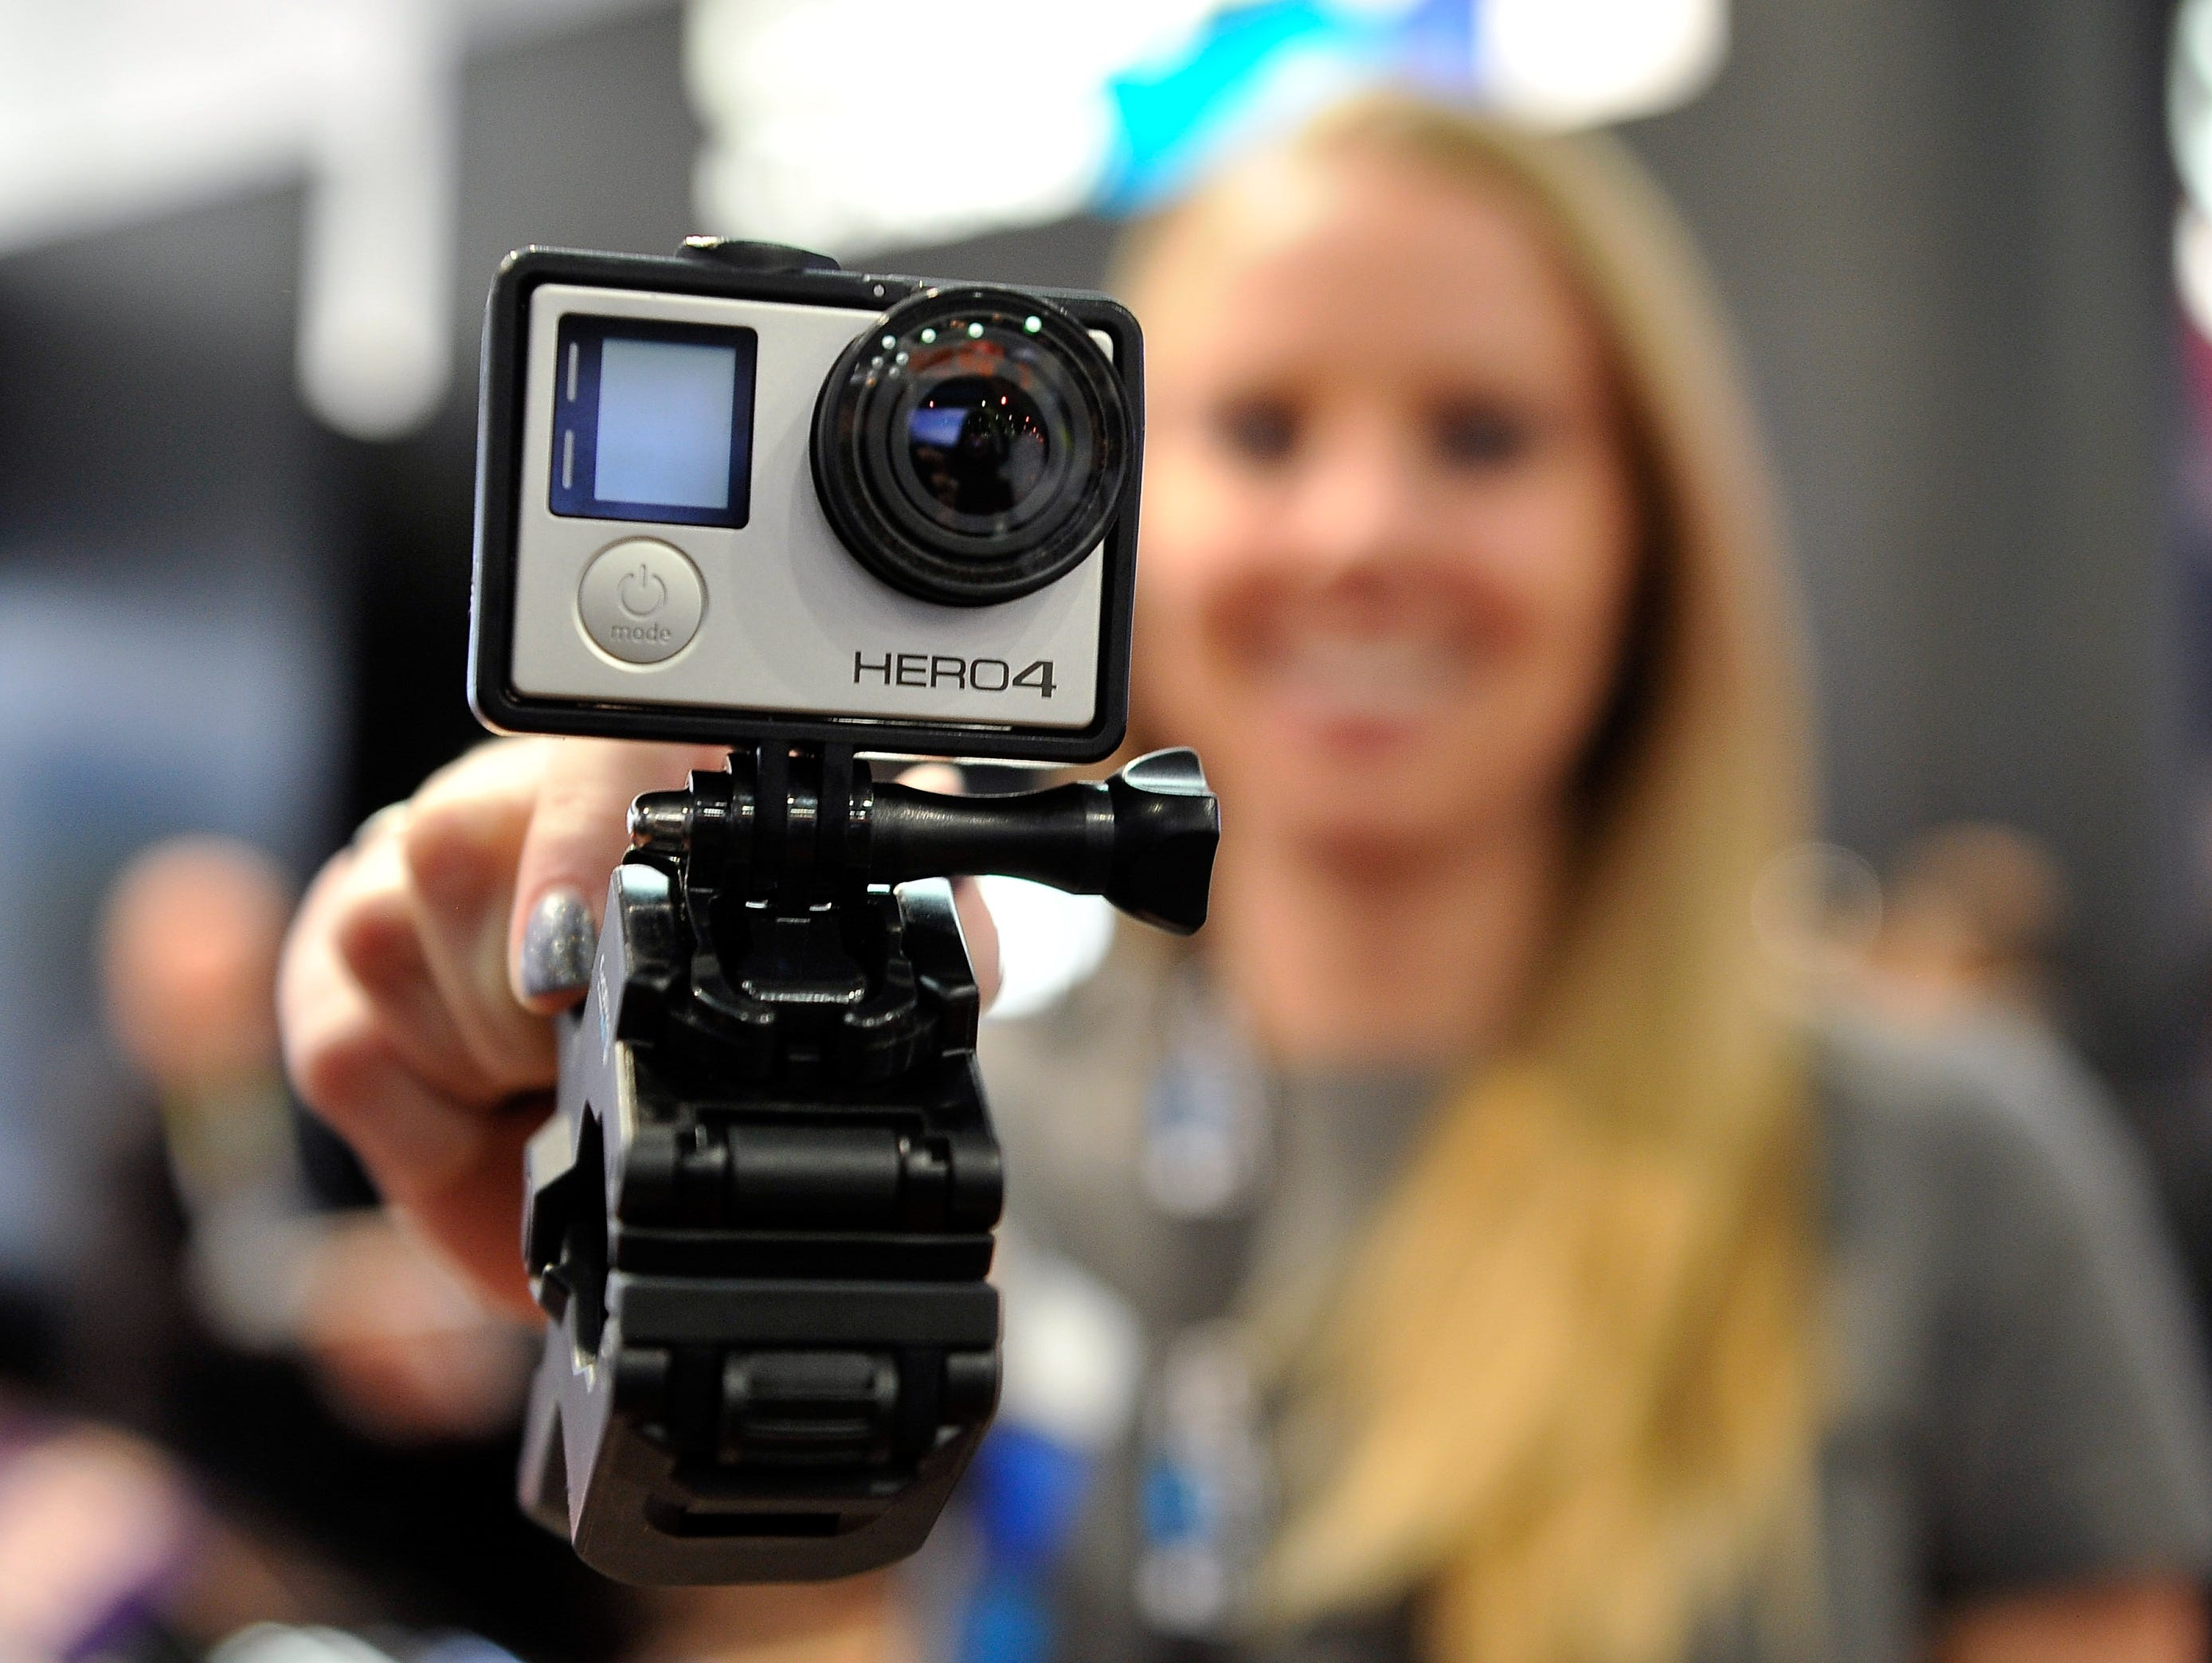 A GoPro Hero 4 camera is displayed at the 2015 International CES at the Las Vegas Convention Center on January 6, 2015 ,in Las Vegas.